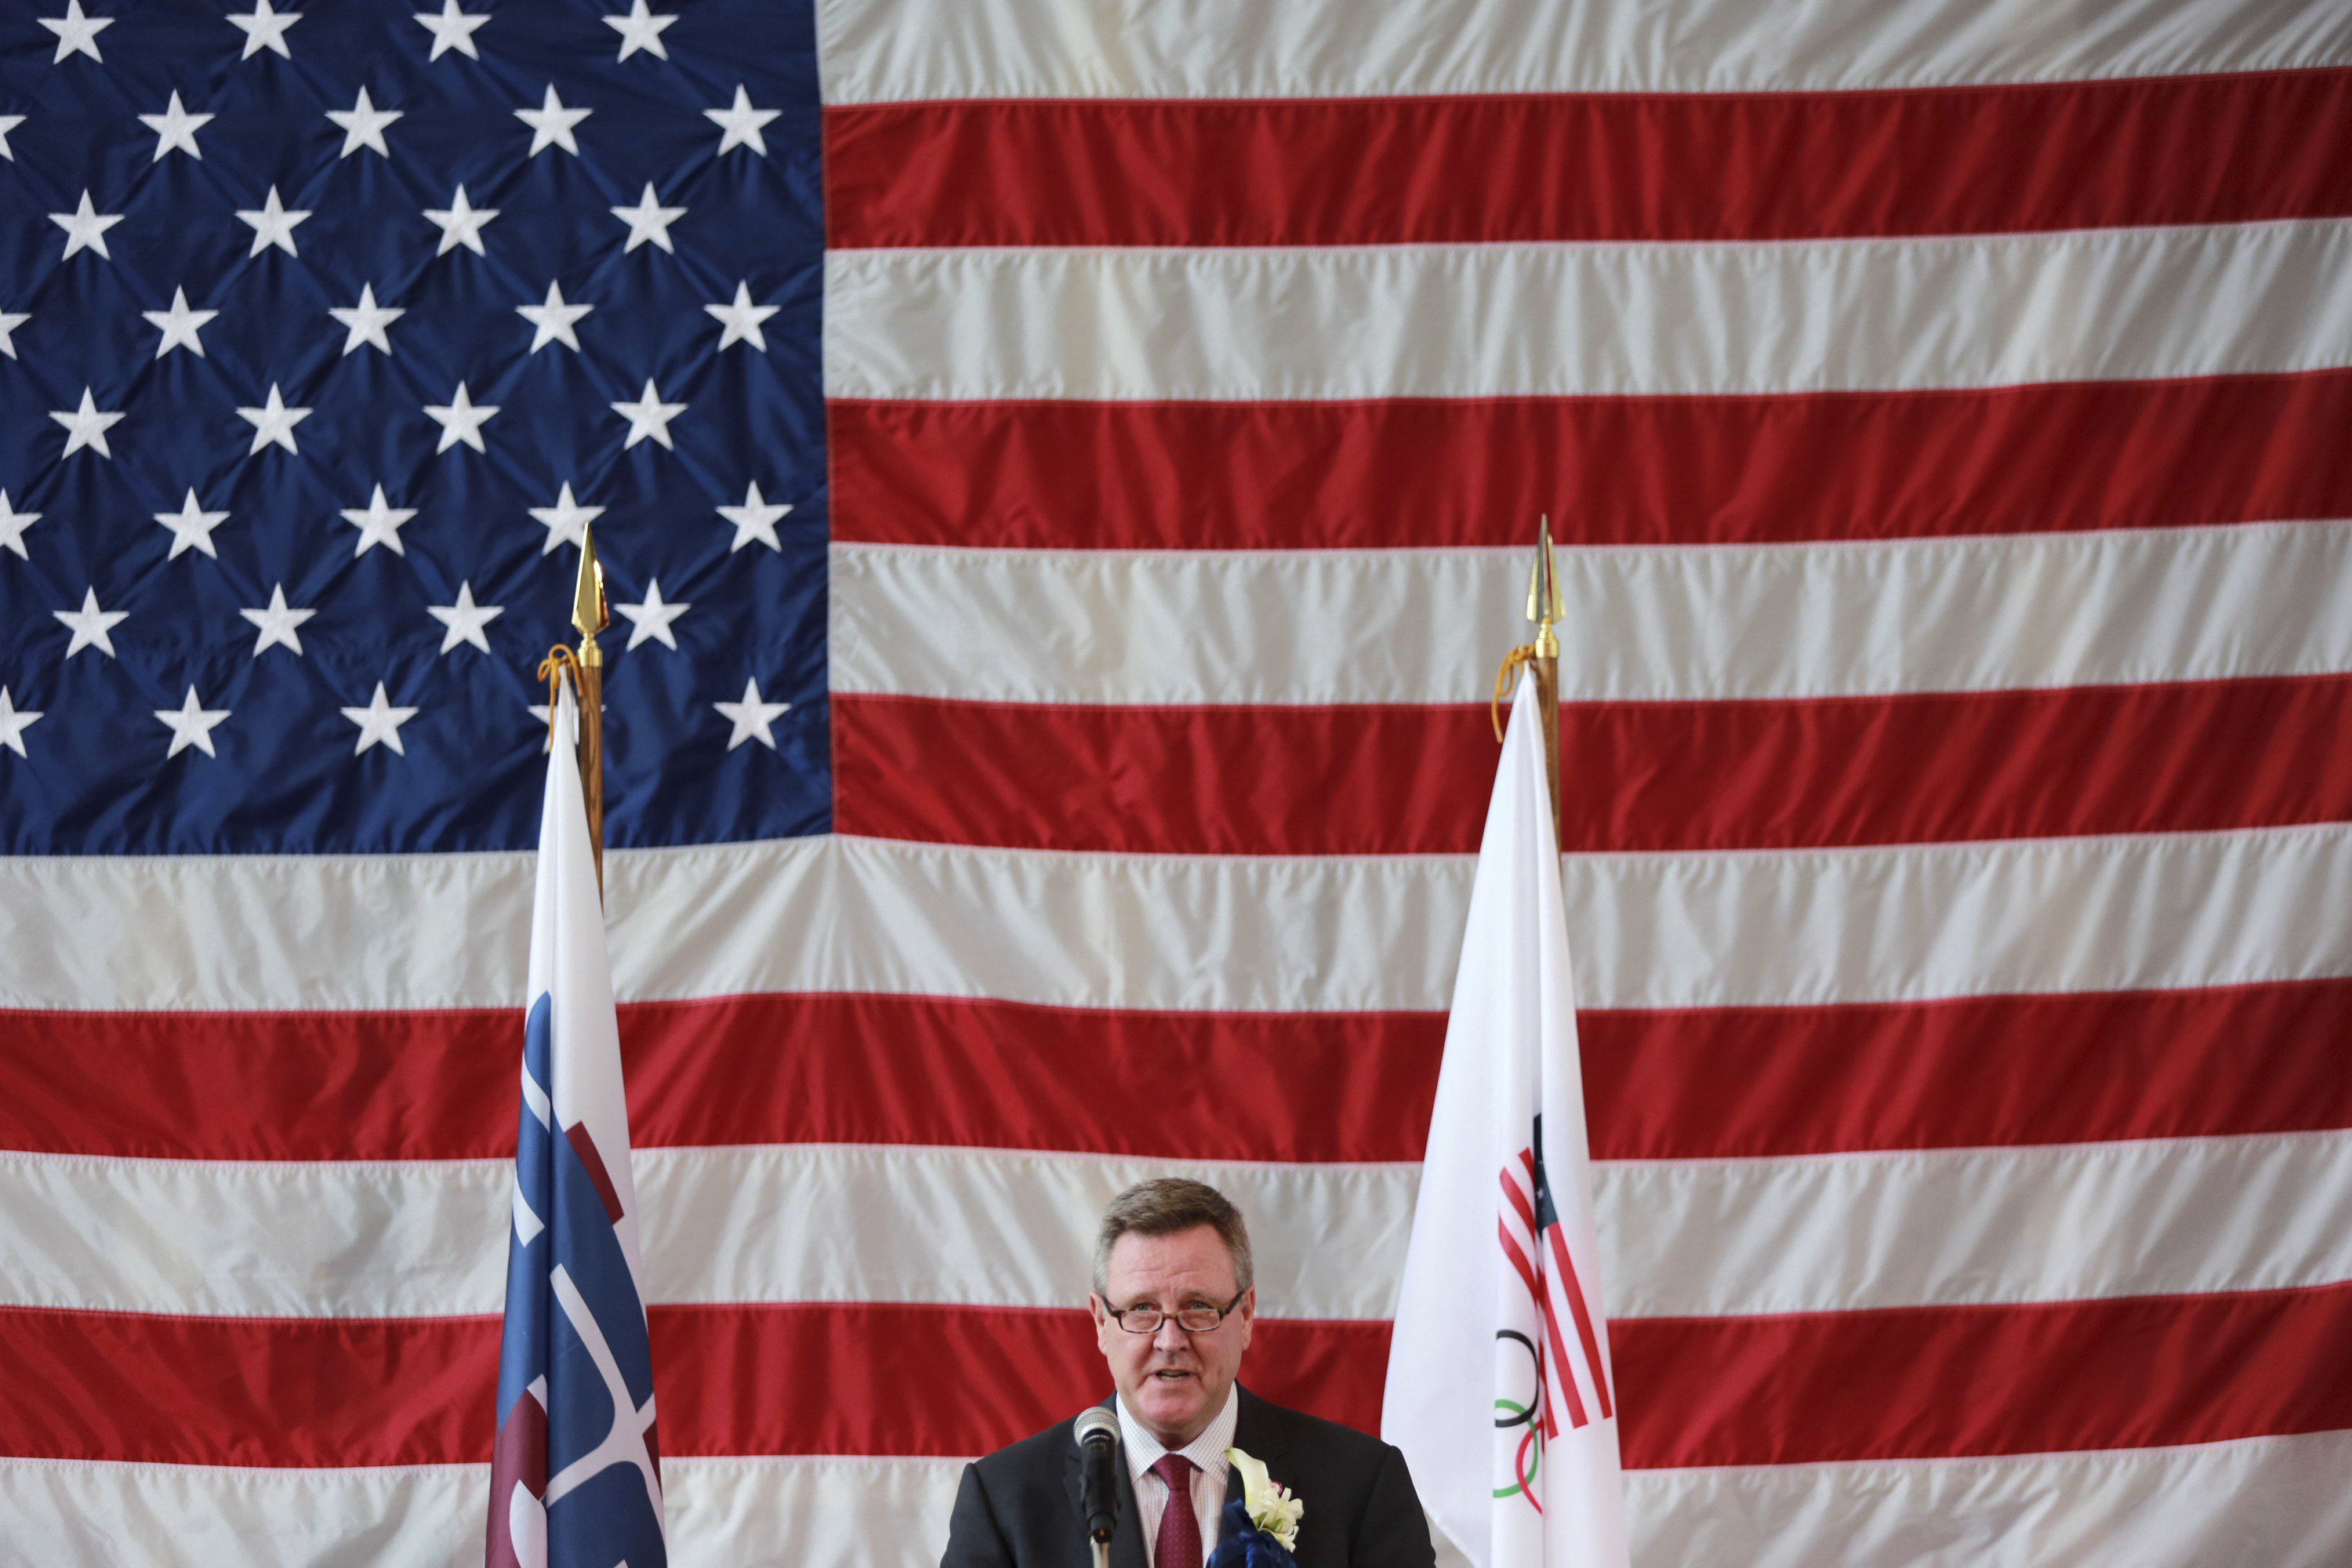 U.S. Olympic Committee CEO Scott Blackmun speaks at Tokyo American Club in Tokyo Wednesday, Aug. 2, 2017. The U.S. Olympic team will be based at the Tokyo American Club during the 2020 Tokyo Olympics, USOC officials announced on Wednesday. (AP Photo/Eugen